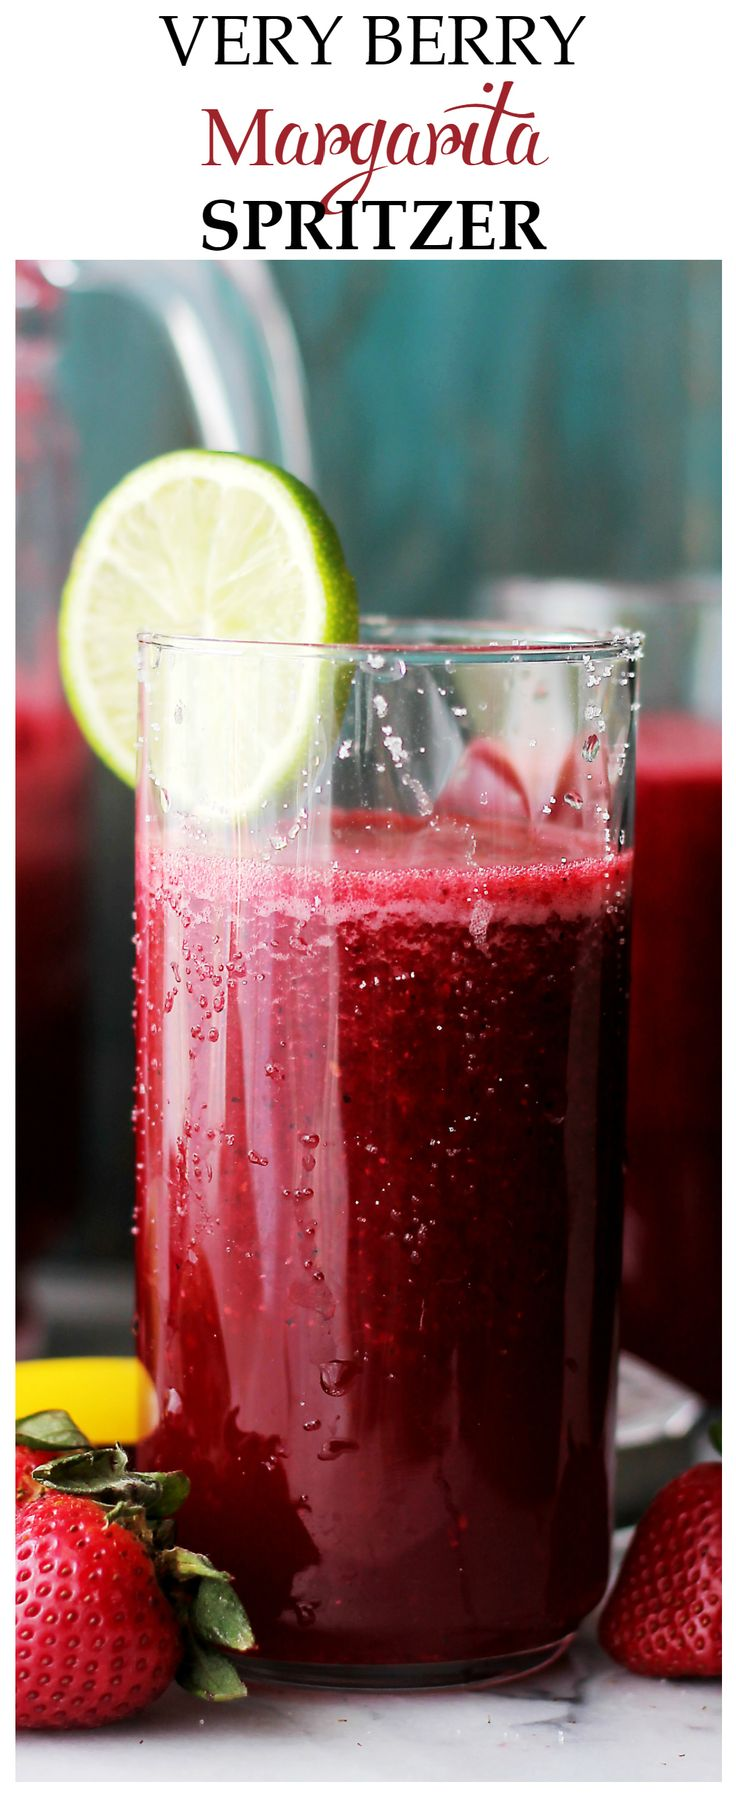 Check out Very Berry Margarita Spritzer. It's so easy to make ...